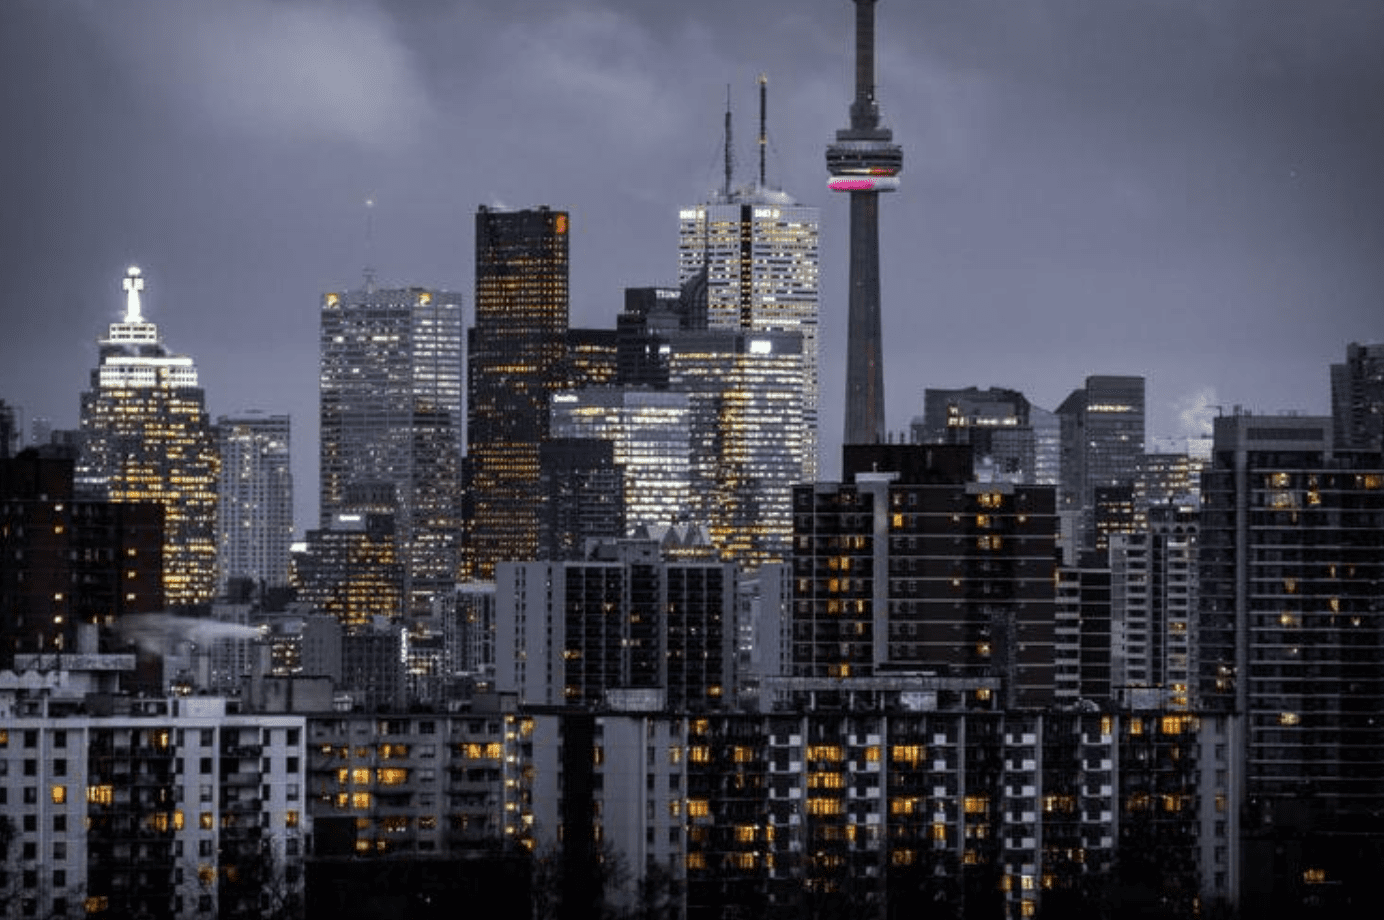 Toronto skyline; image by Zia Syed, via Unsplash.com.